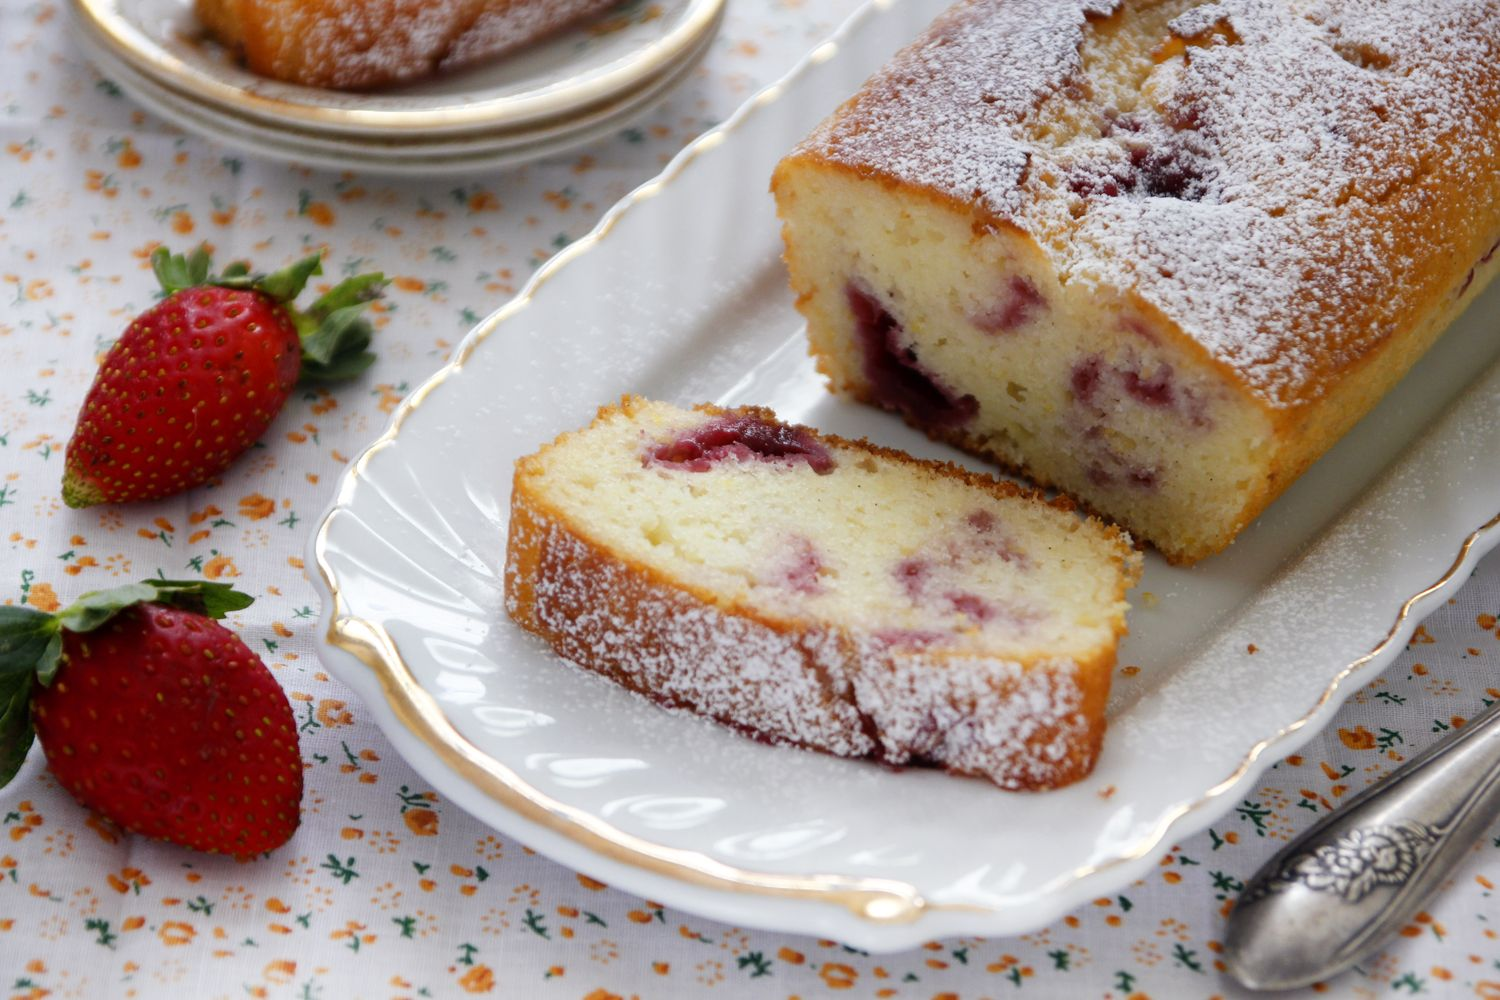 Lemon Cake Marbled with Jam